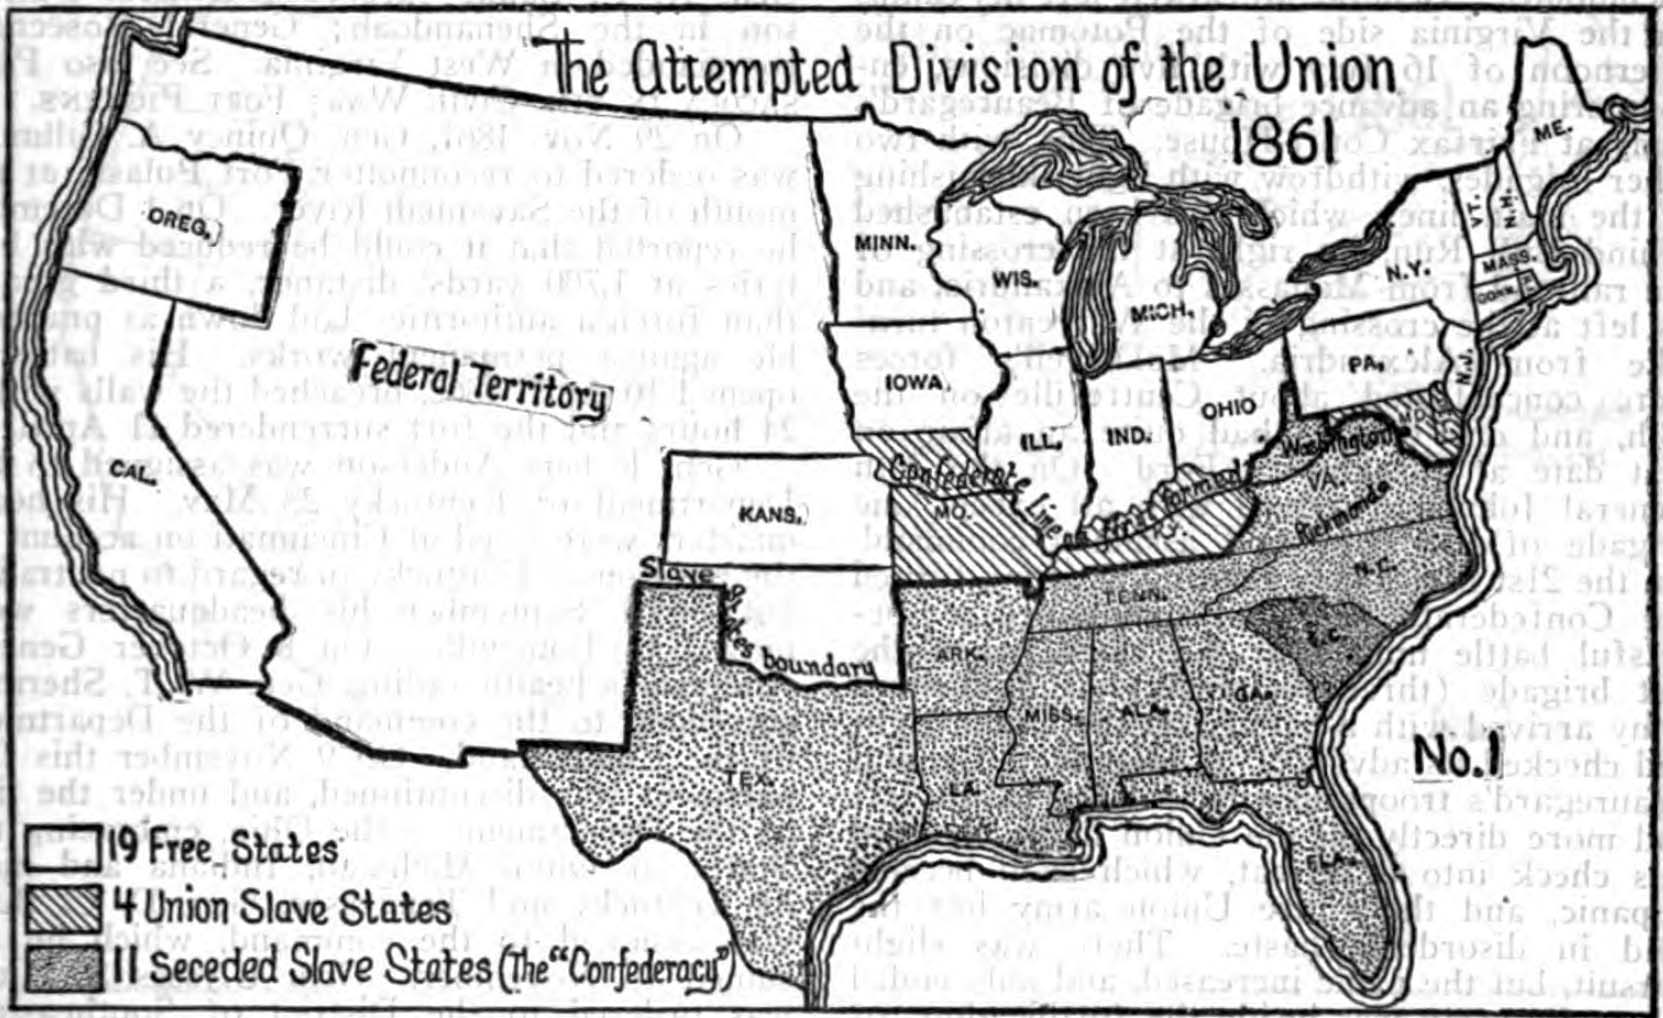 FileAmericana Civil War In America Map Jpg Wikimedia Commons - Map of us at start of civil war